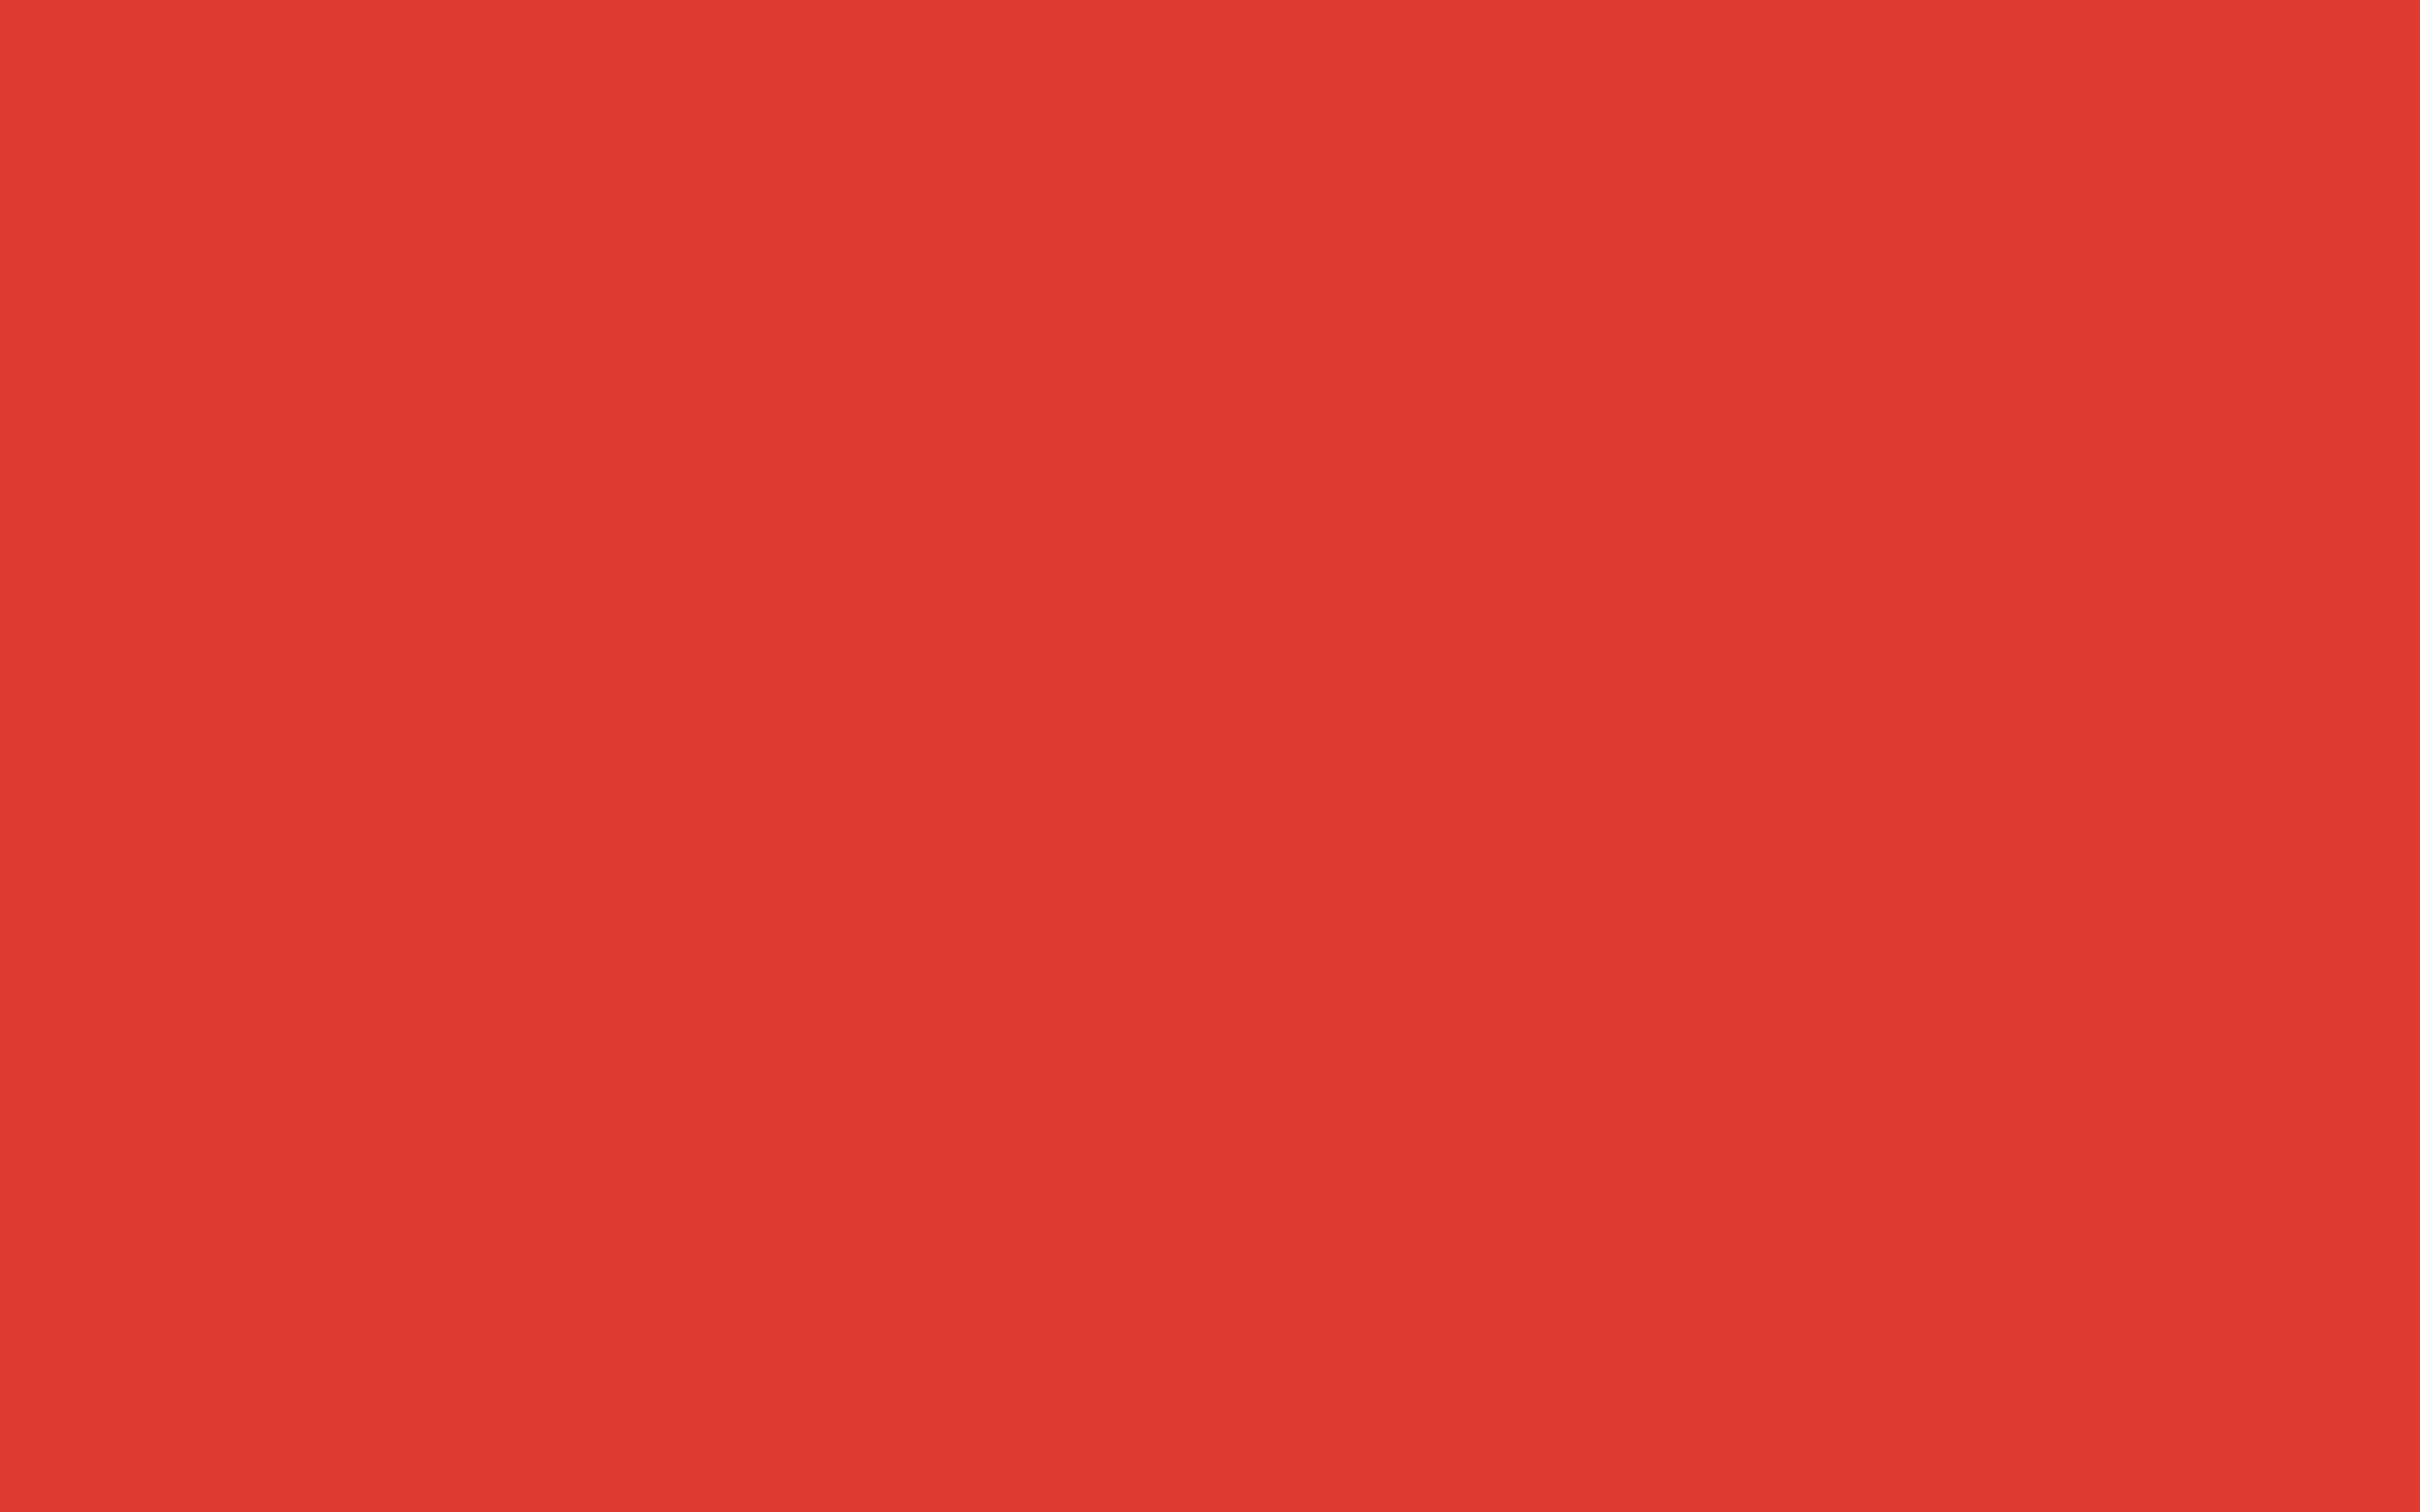 2560x1600 CG Red Solid Color Background